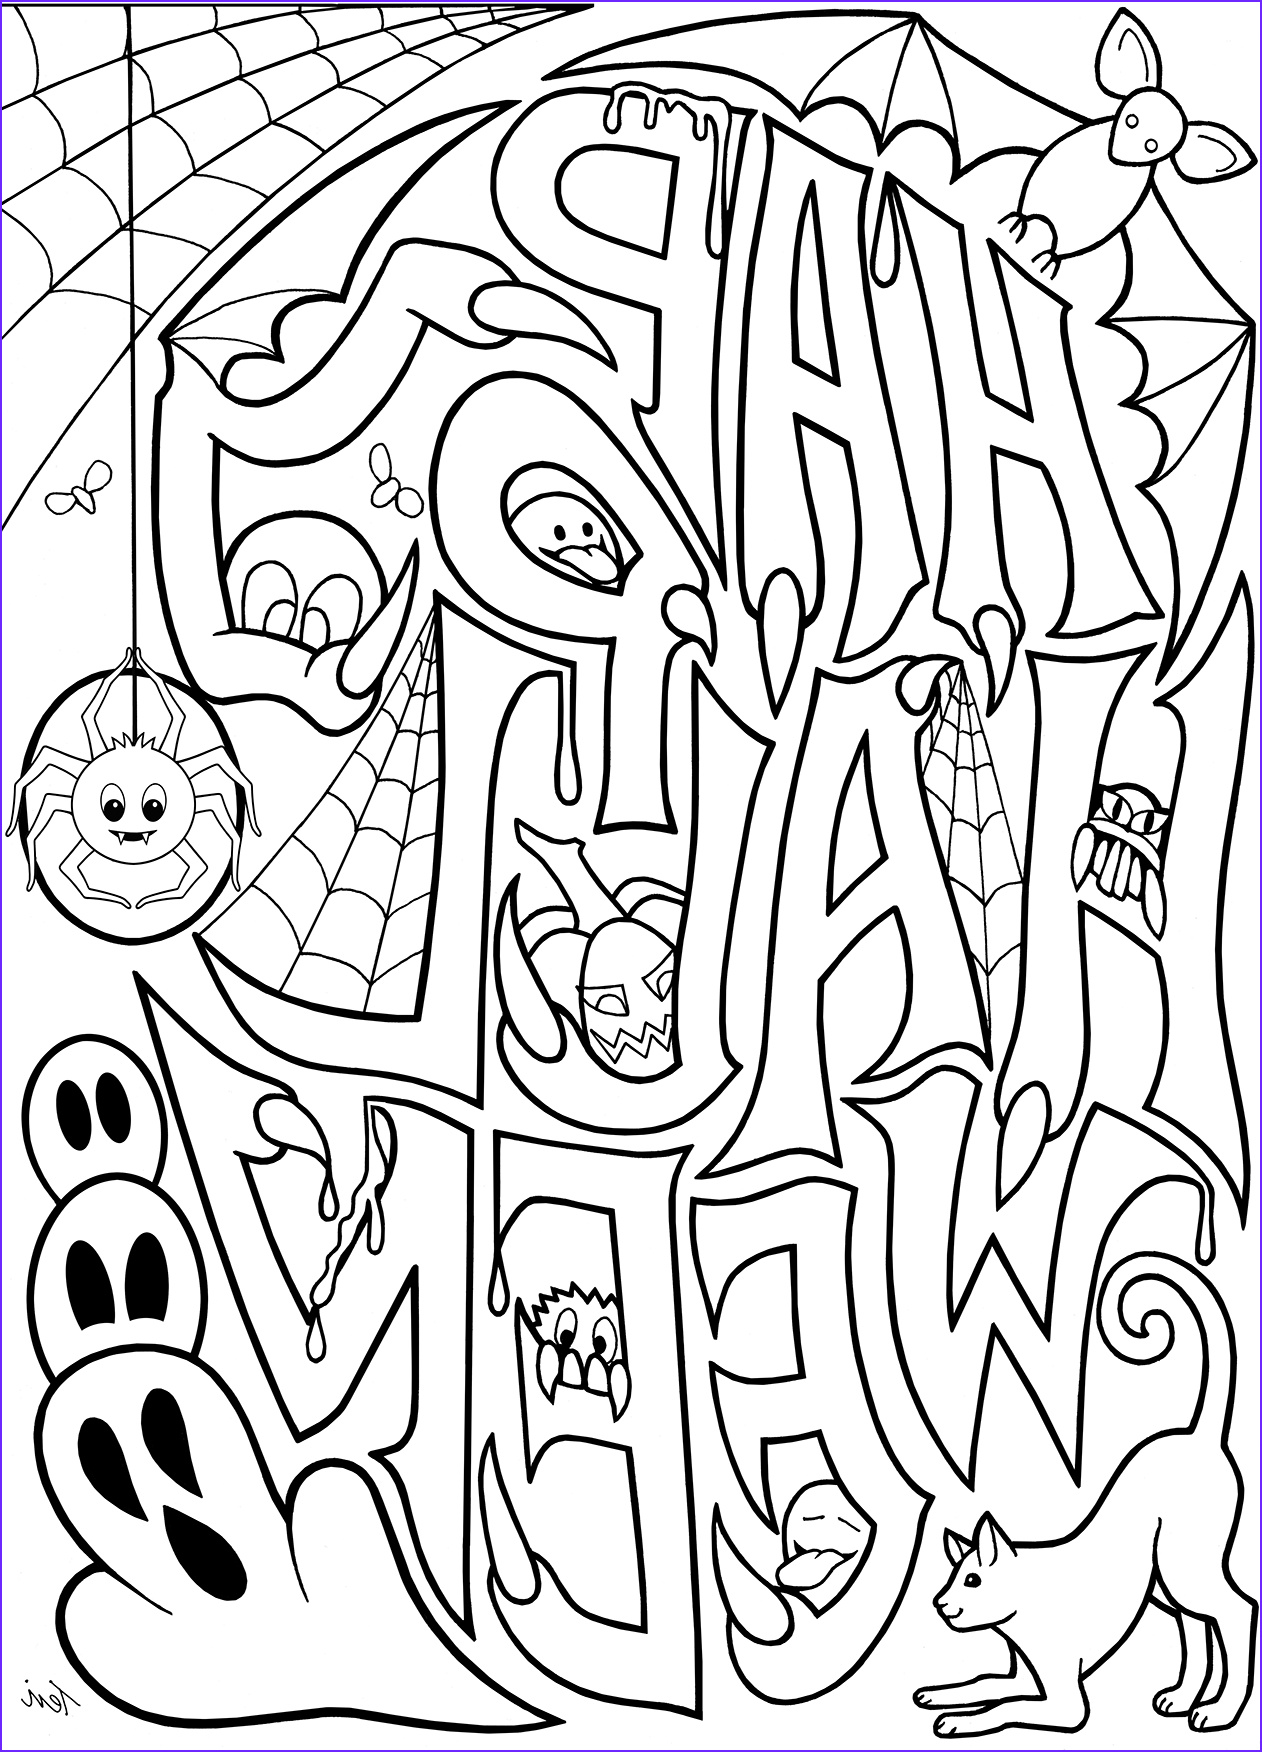 Free Printable Halloween Coloring Pages Adults Elegant Photos Free Adult Coloring Book Pages Happy Halloween by Blue